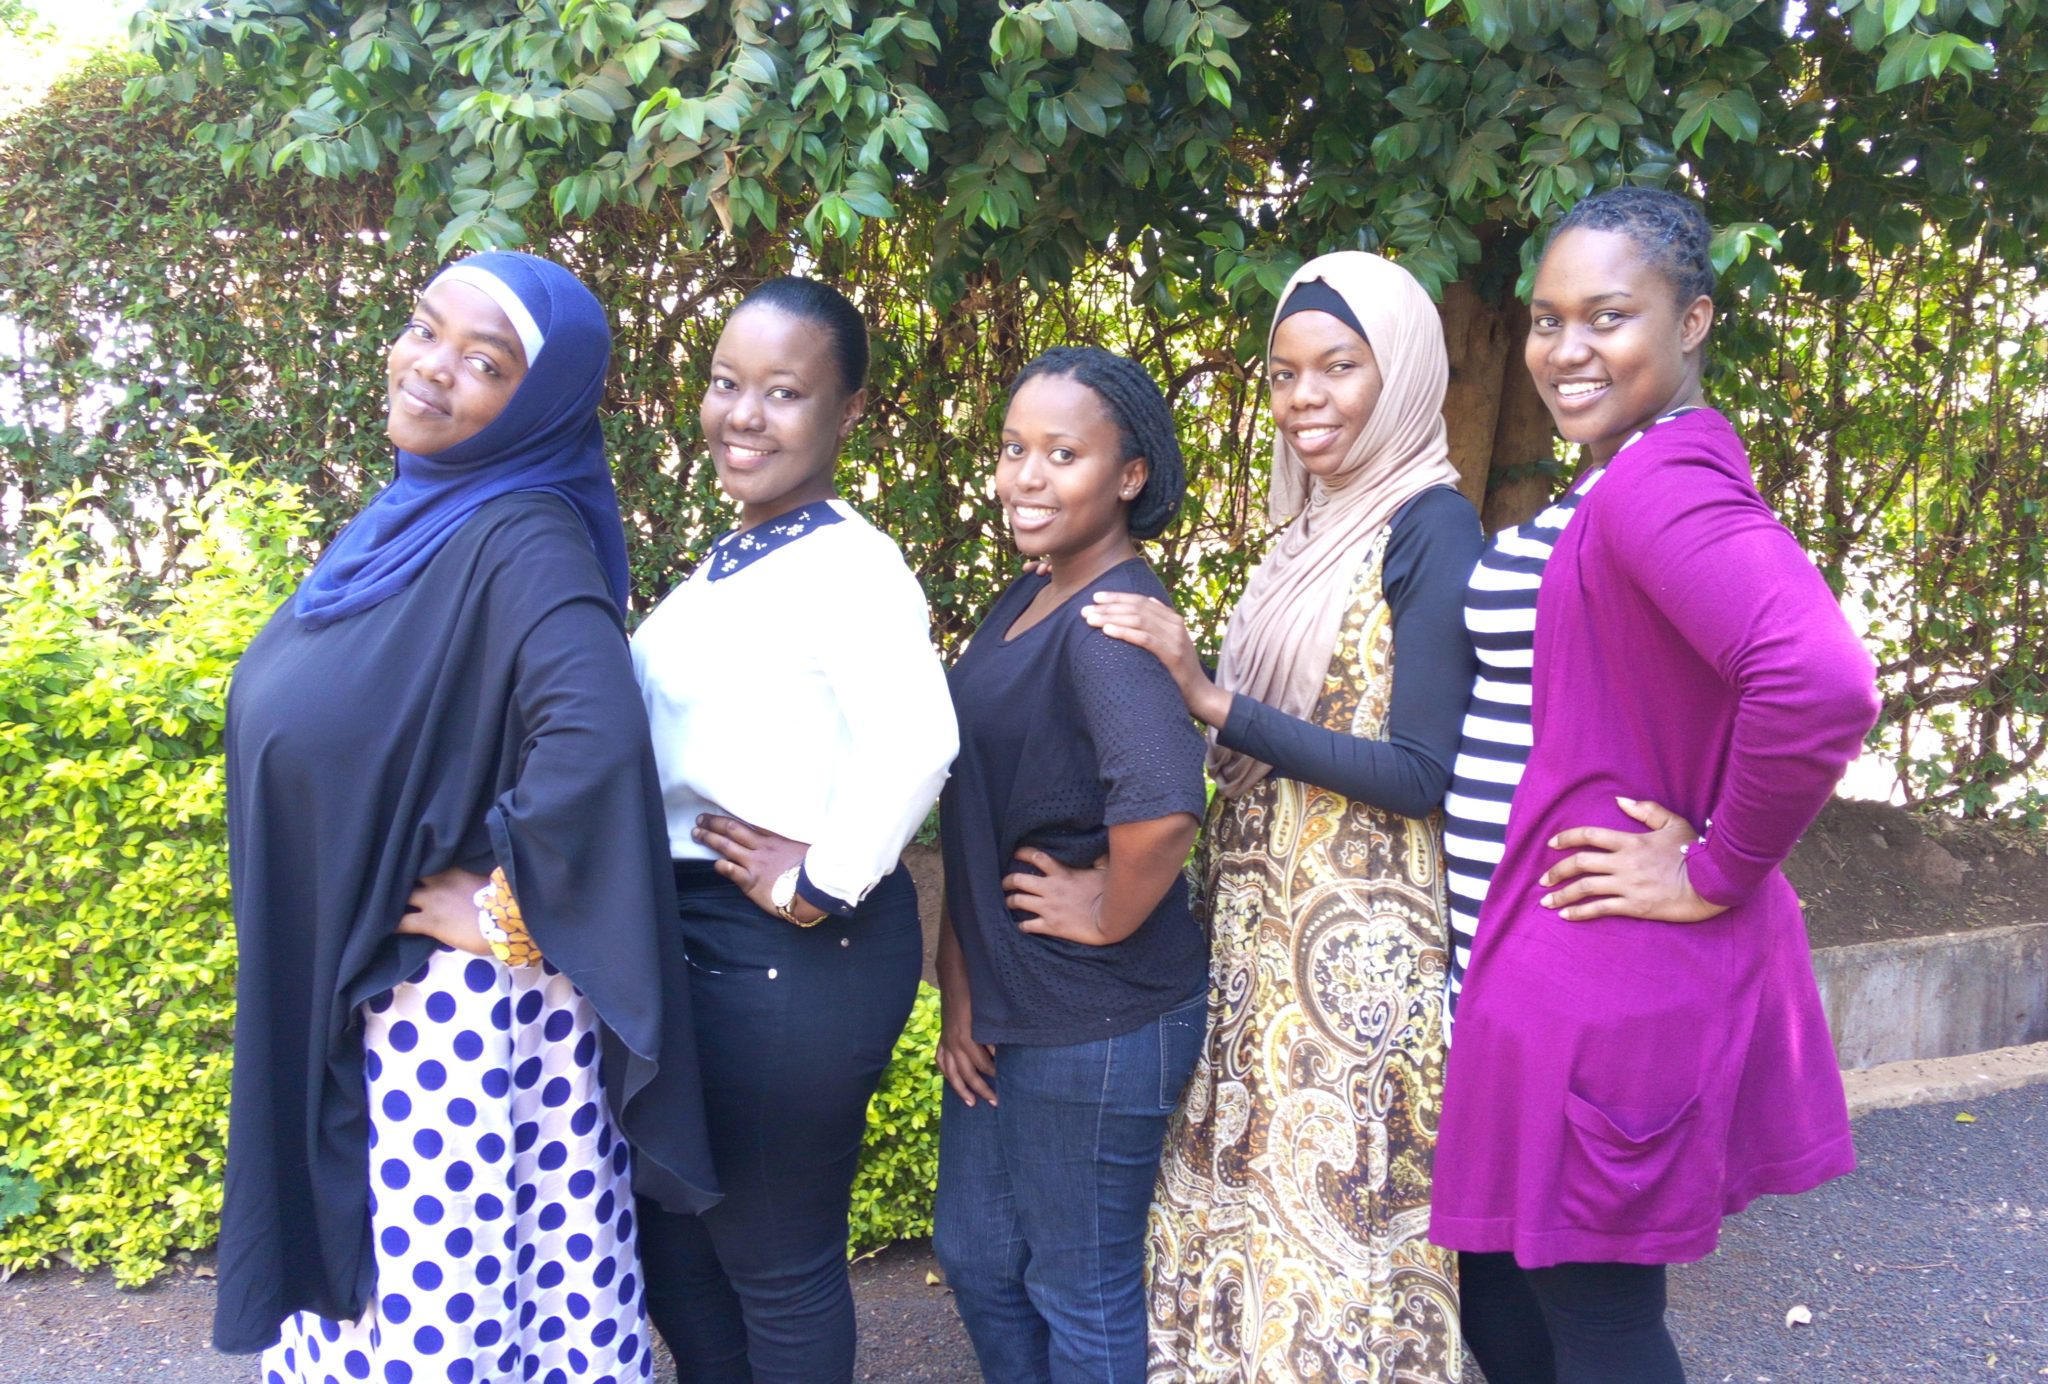 The 2017 Binti Shupavu Team (L-R):  Salma, Irene, Violeth, Asimwe and Theresia